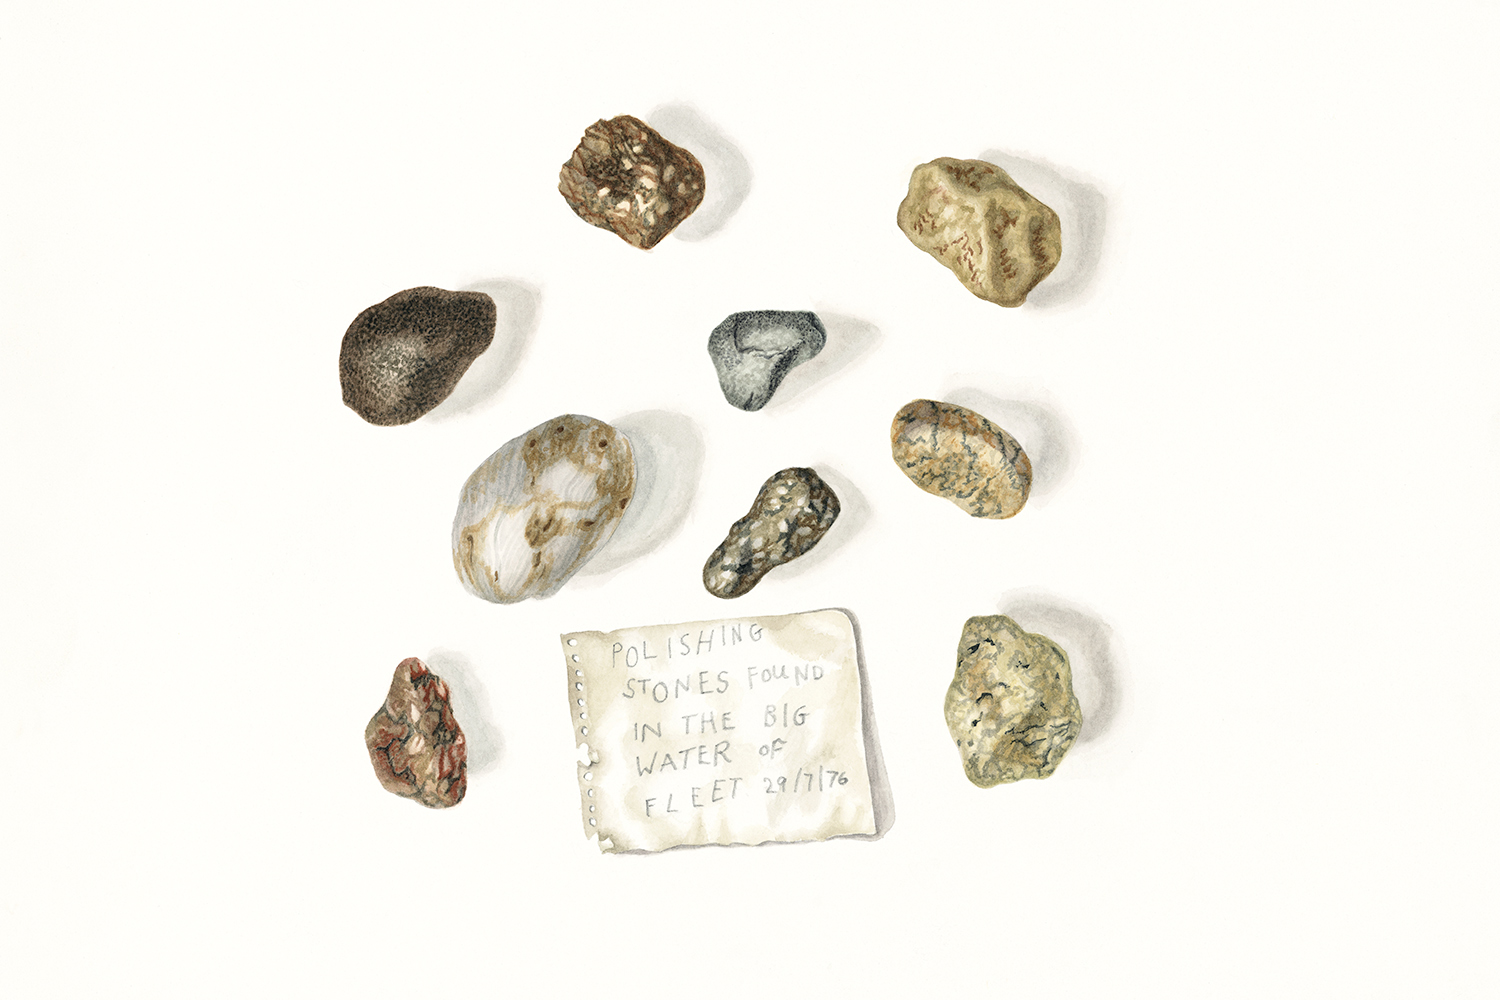 Pebbles found on the Kelton Steps 30.7.76 (collection of Duncan Matthews), 2010, watercolour on paper